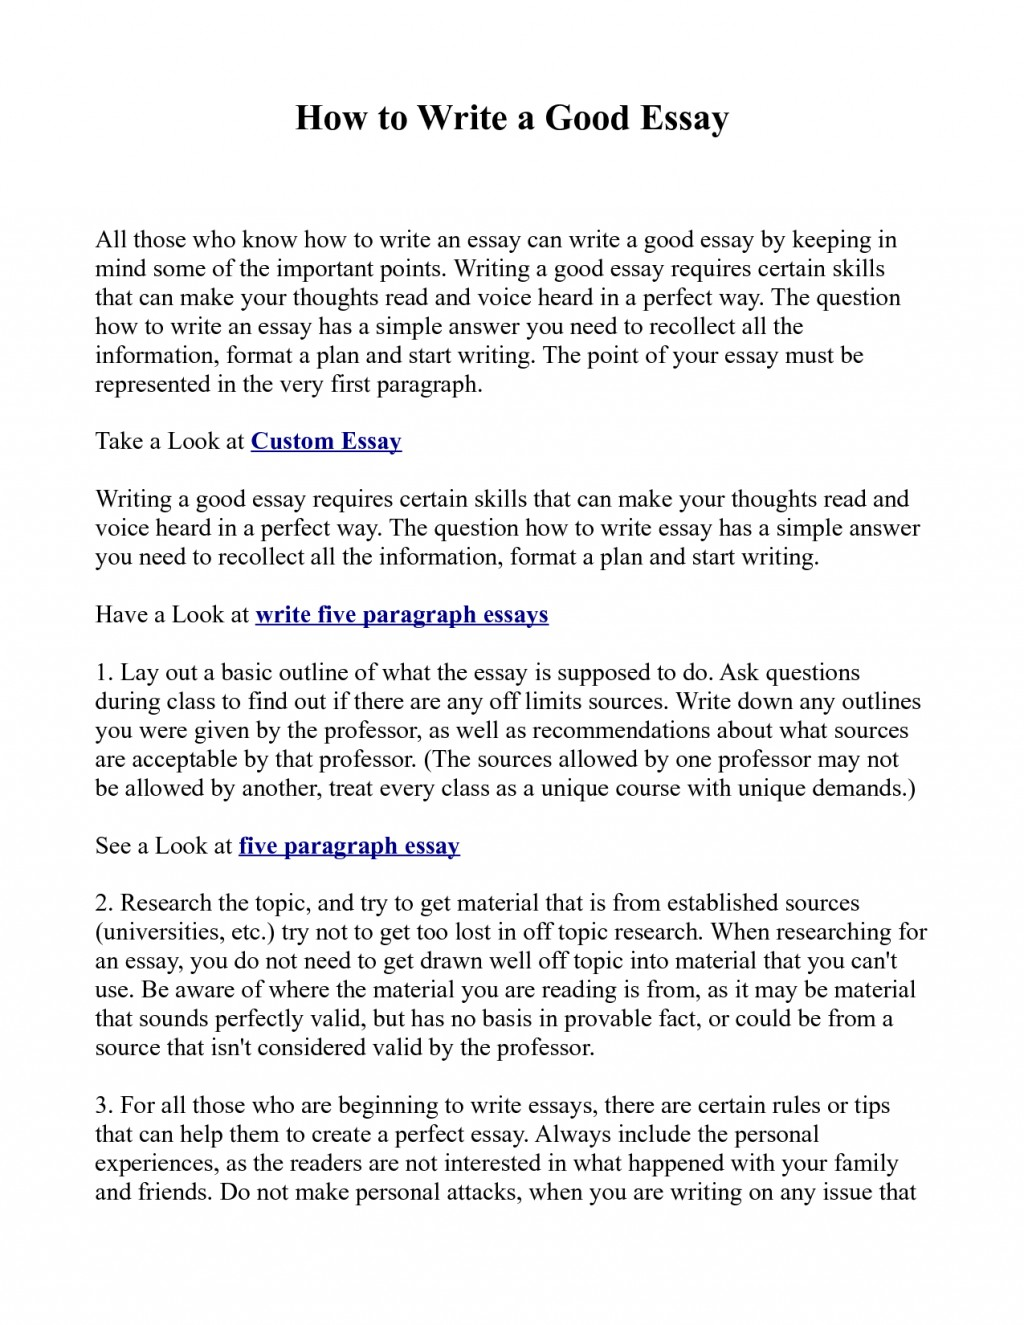 007 Ex1id5s6cl Essay Example How To Start Amazing An Analysis On A Book Ways With Question About Two Books Large